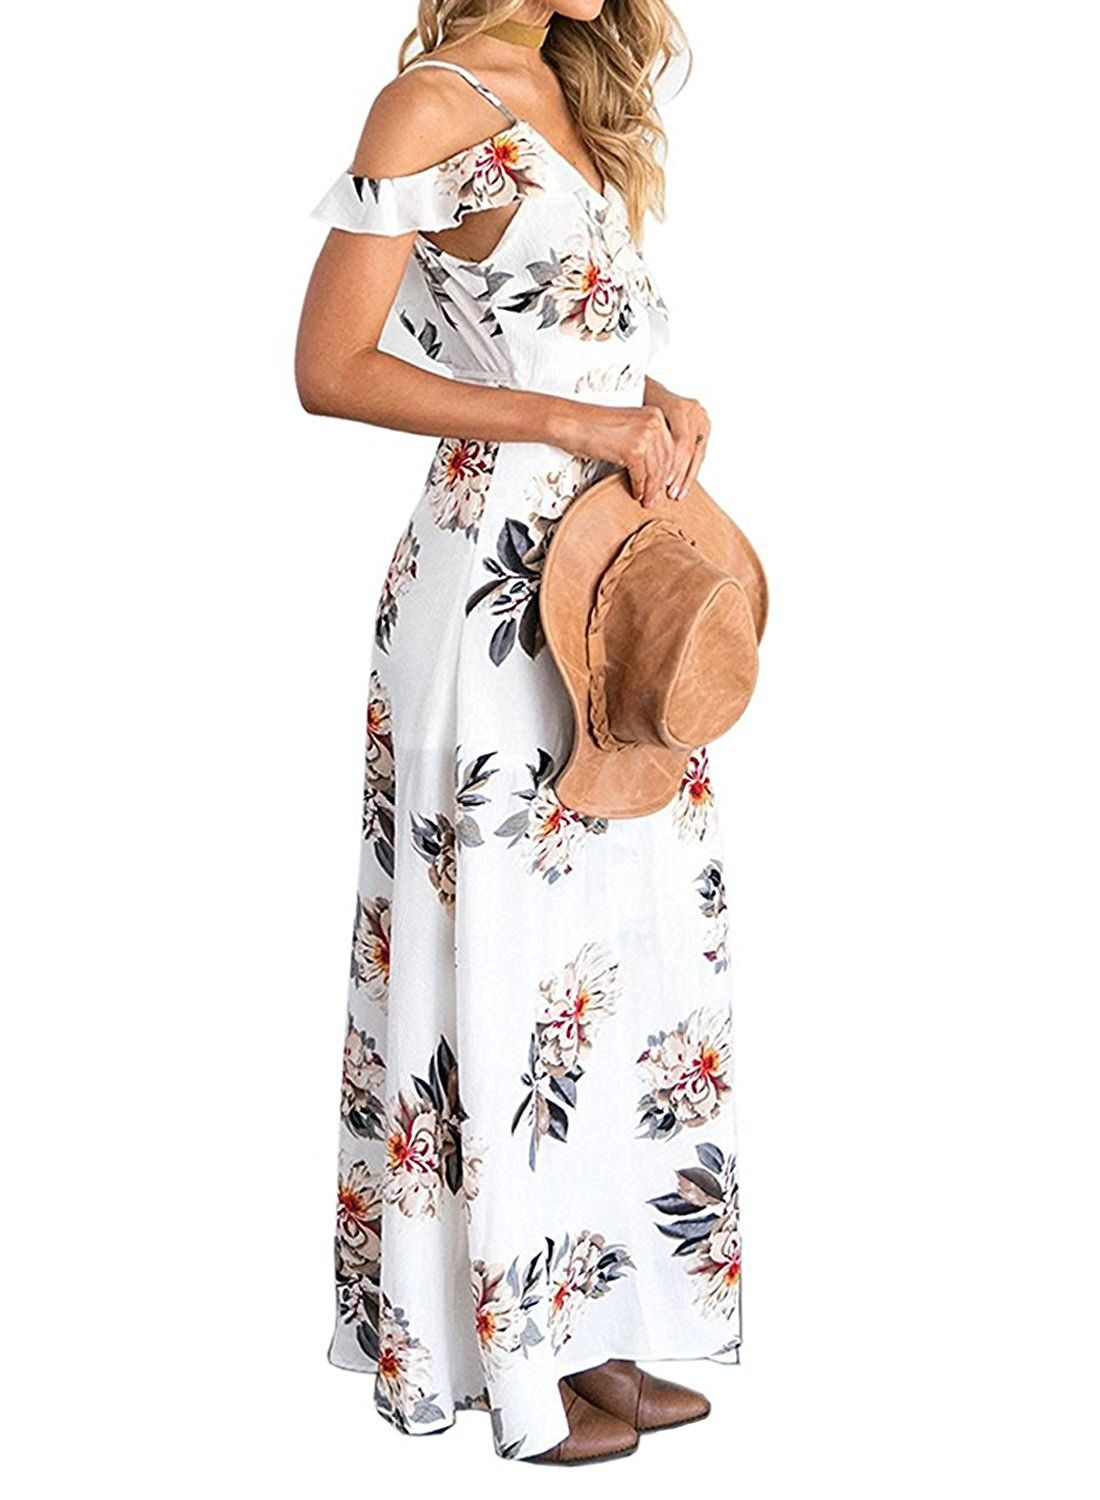 dd5ff8f4a04 ZESICA Women s Cold Shoulder Spaghetti Strap Floral Printed Beach Party Maxi  Dress at Amazon Women s Clothing store